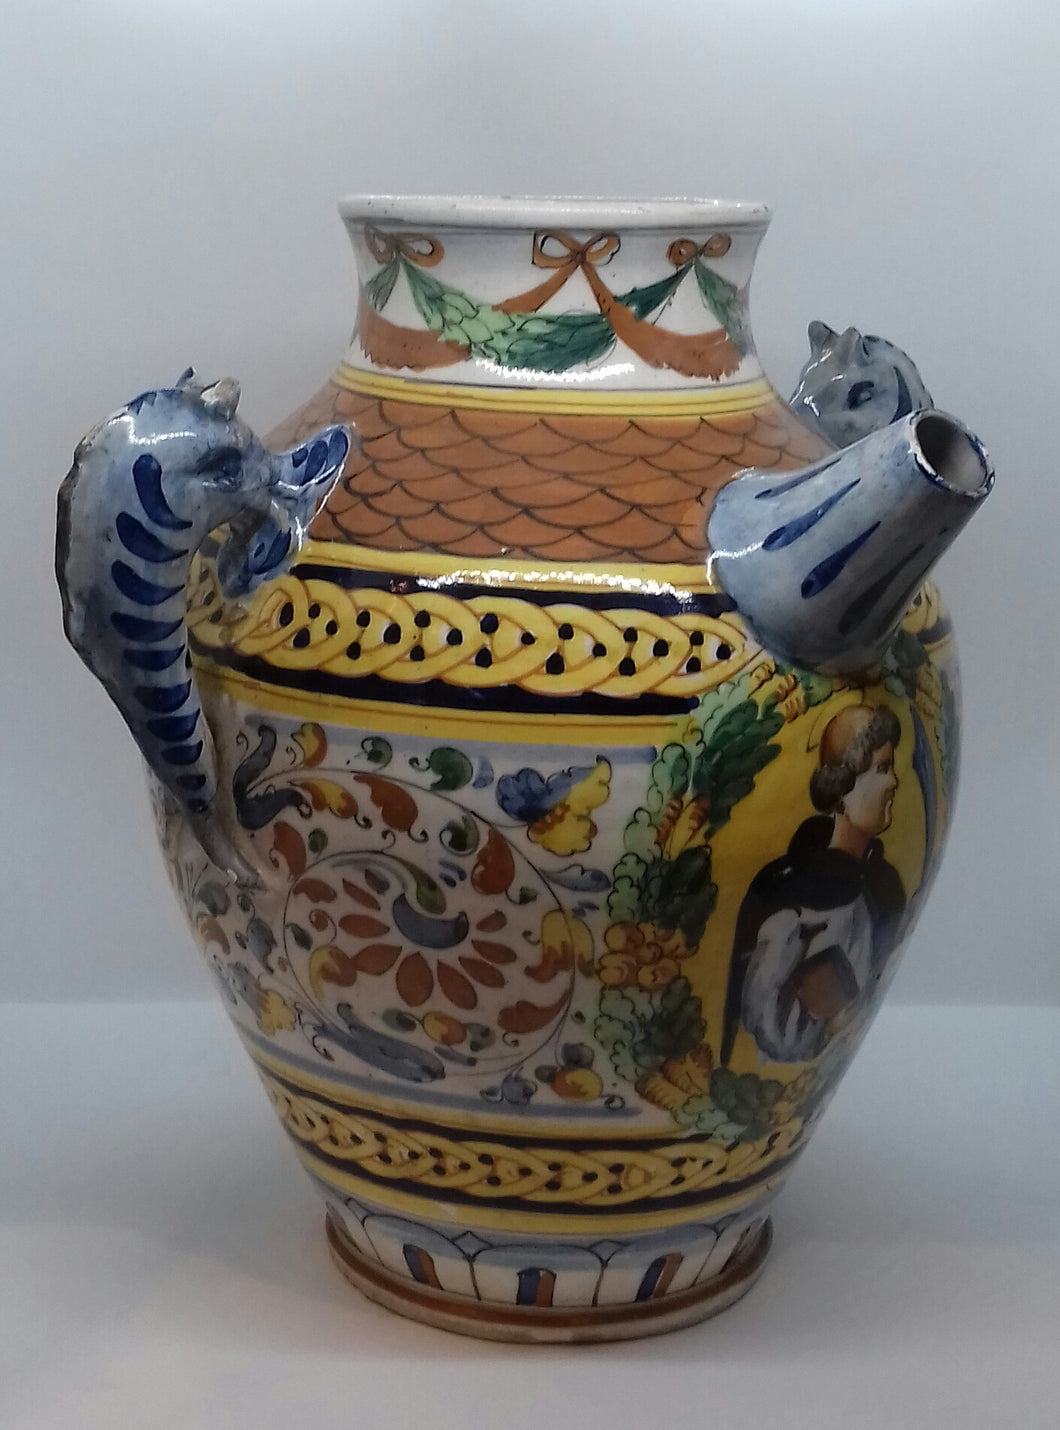 3) Italian Majolica Wet Drug Jar  / Late19th Century